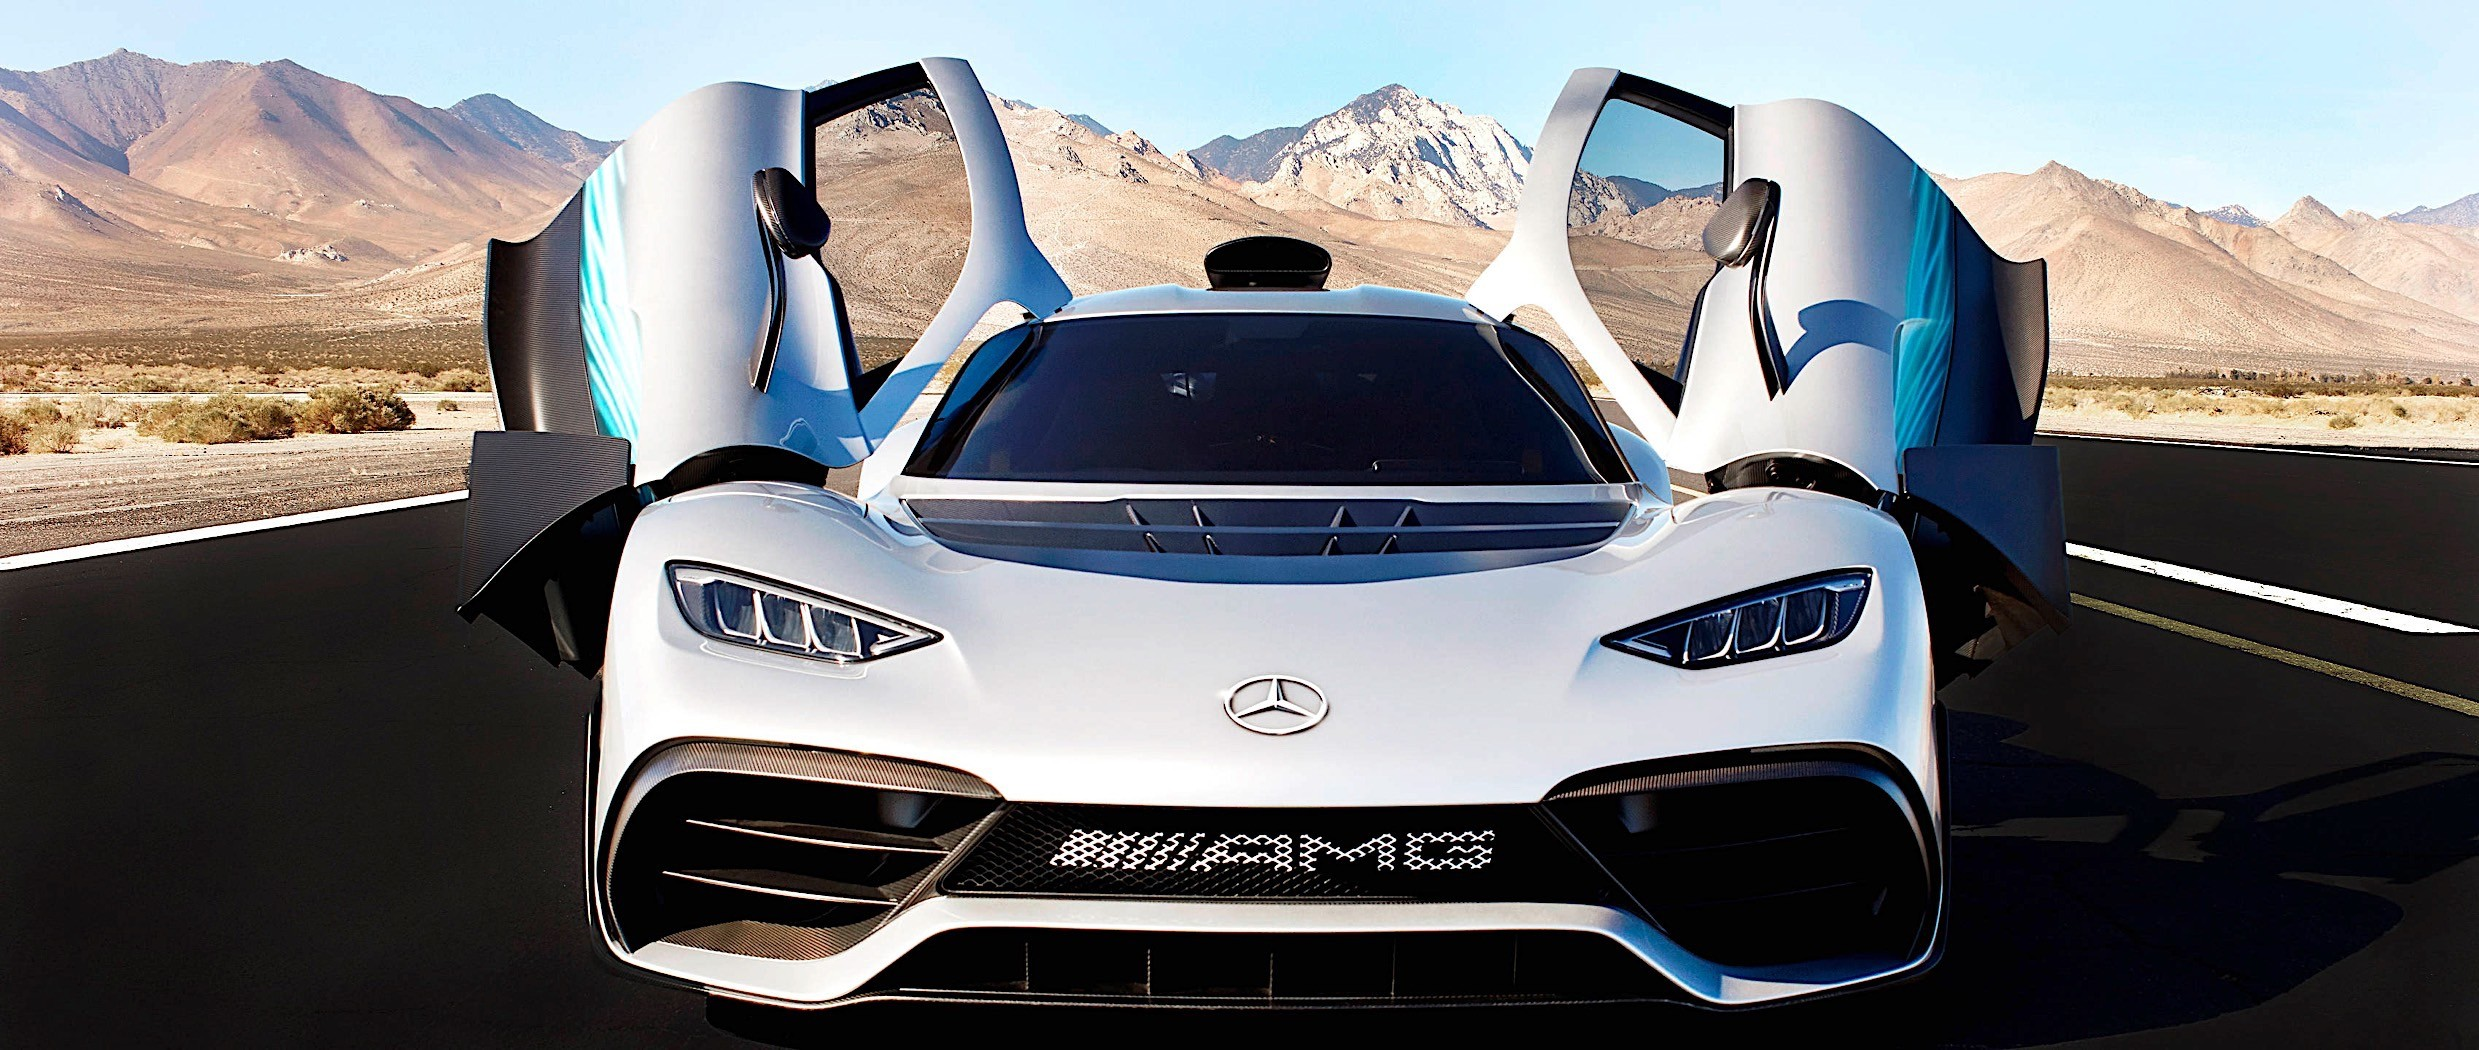 Mercedes AMG Project One Shines In New Wallpaper Gallery